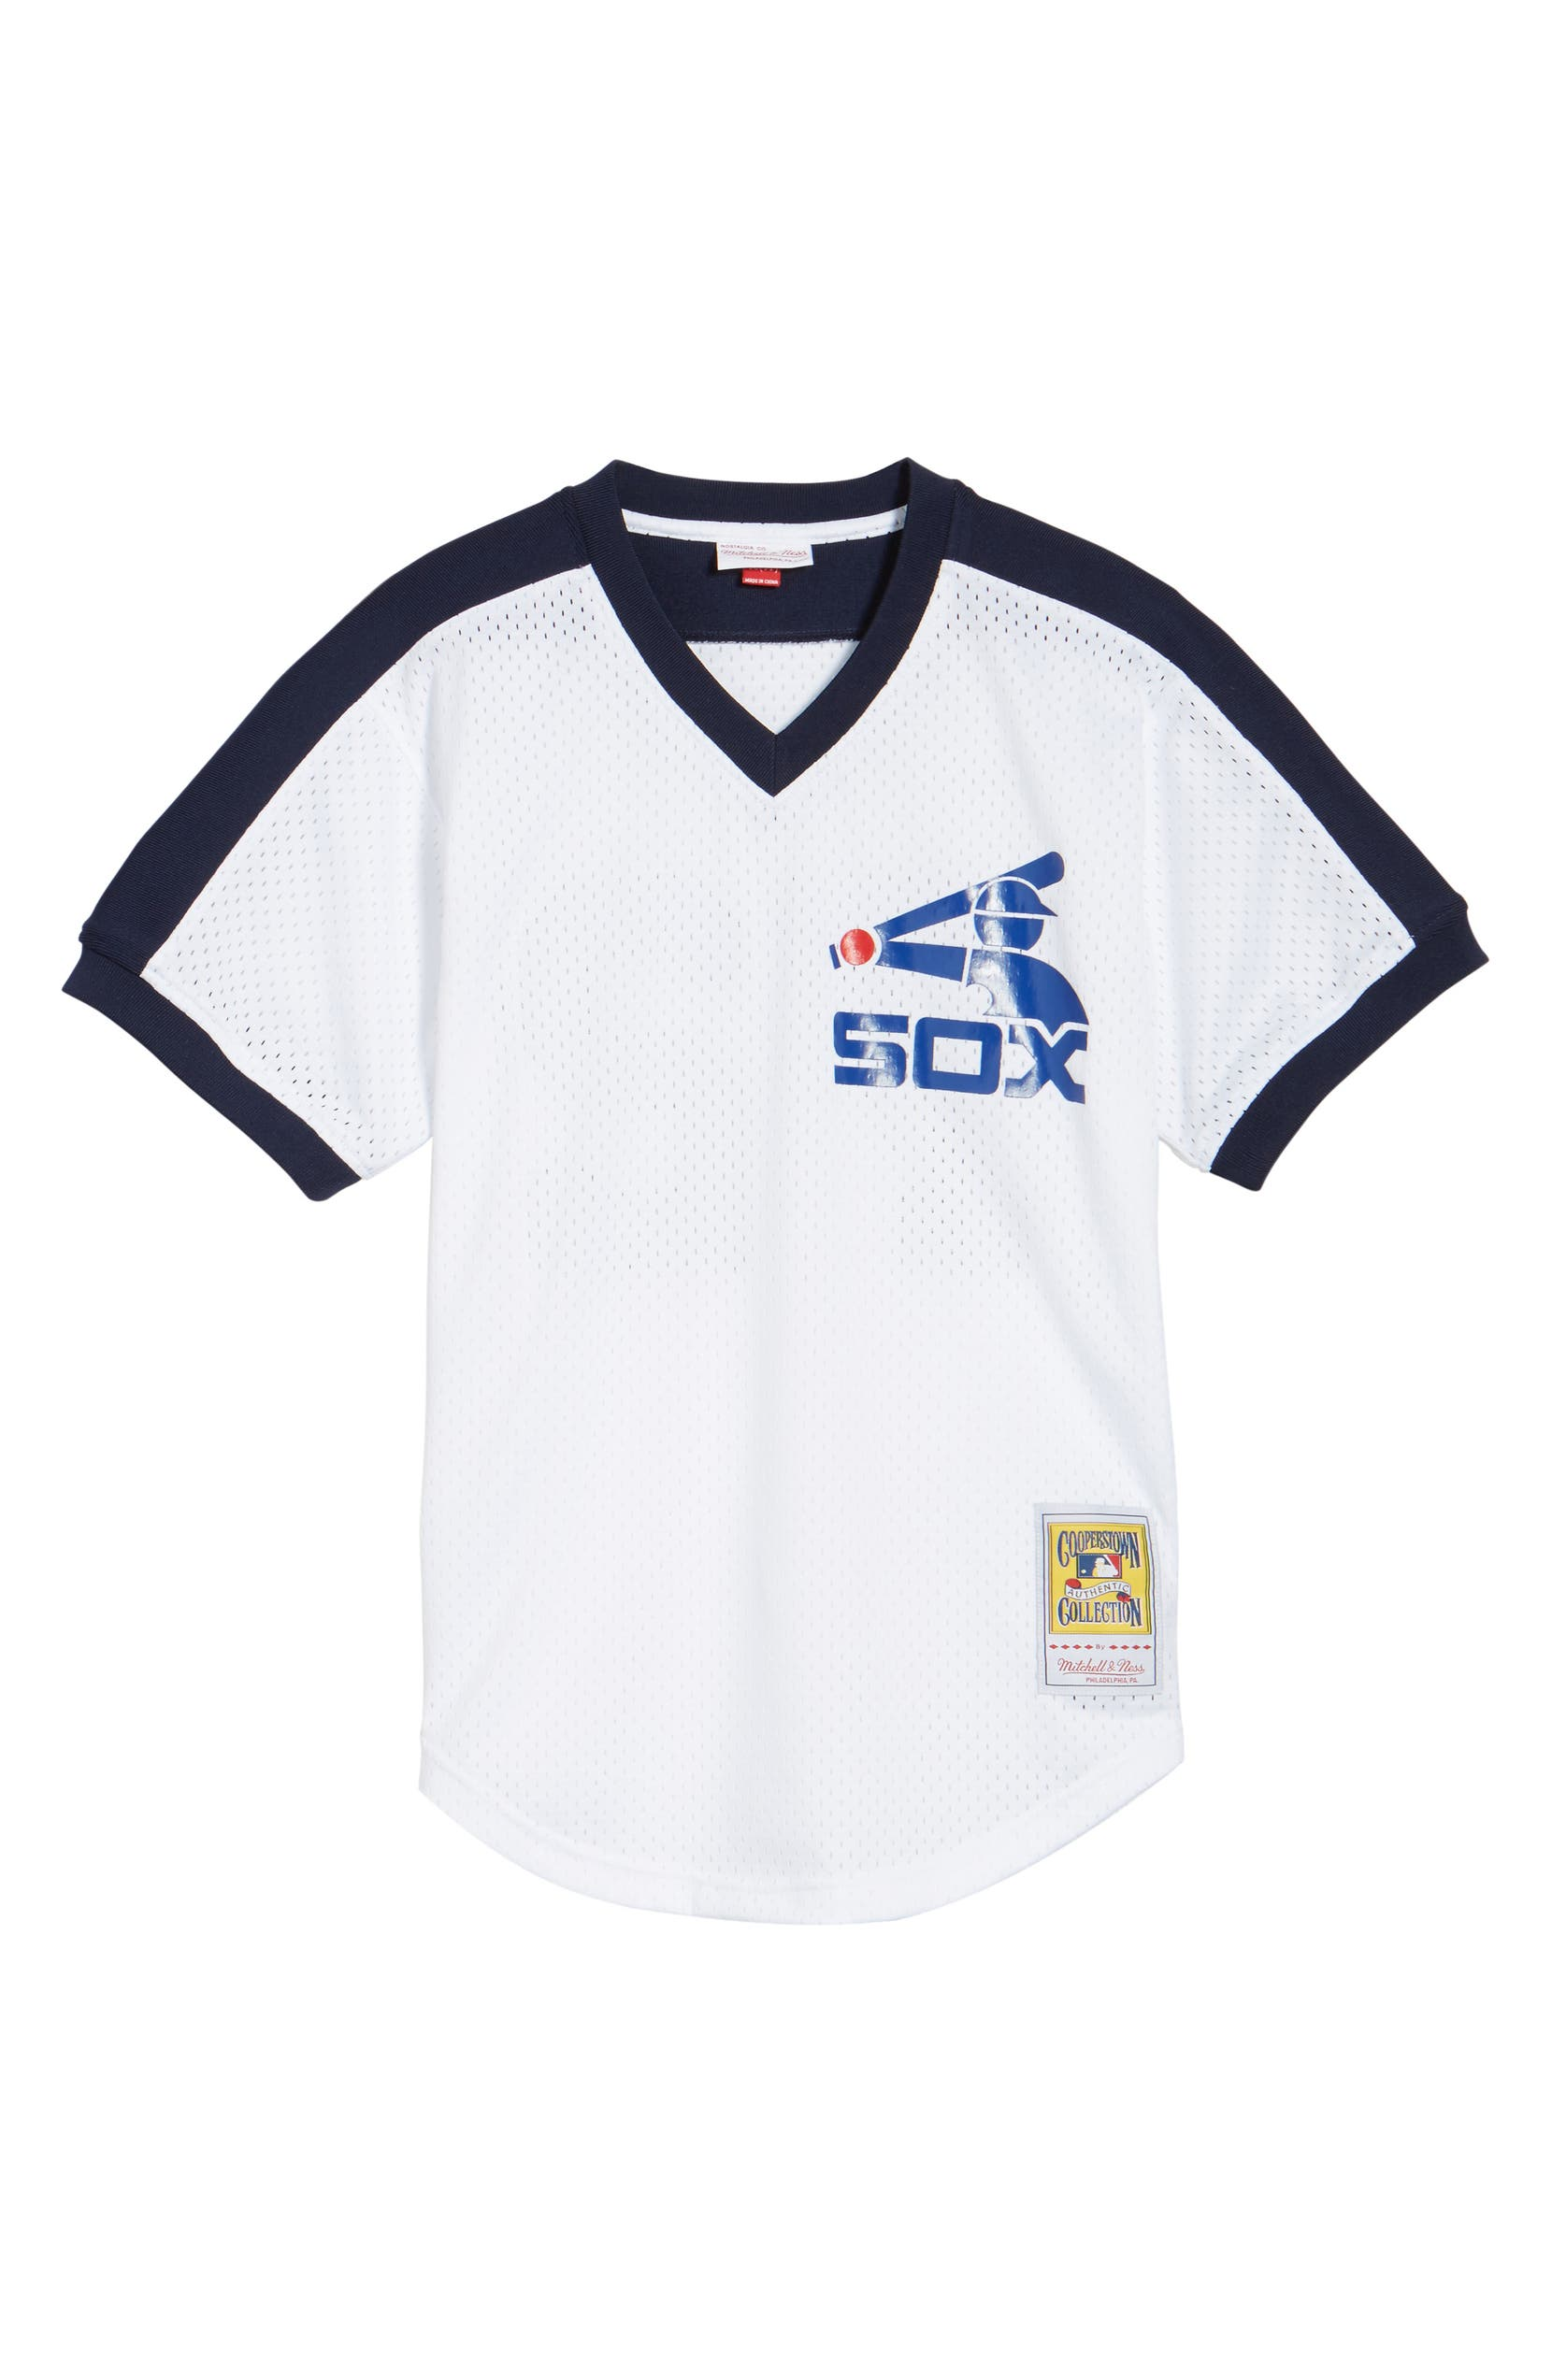 best website ac0e7 7328a Sox White Authentic Mesh Fisk Jersey Carlton Chicago ...